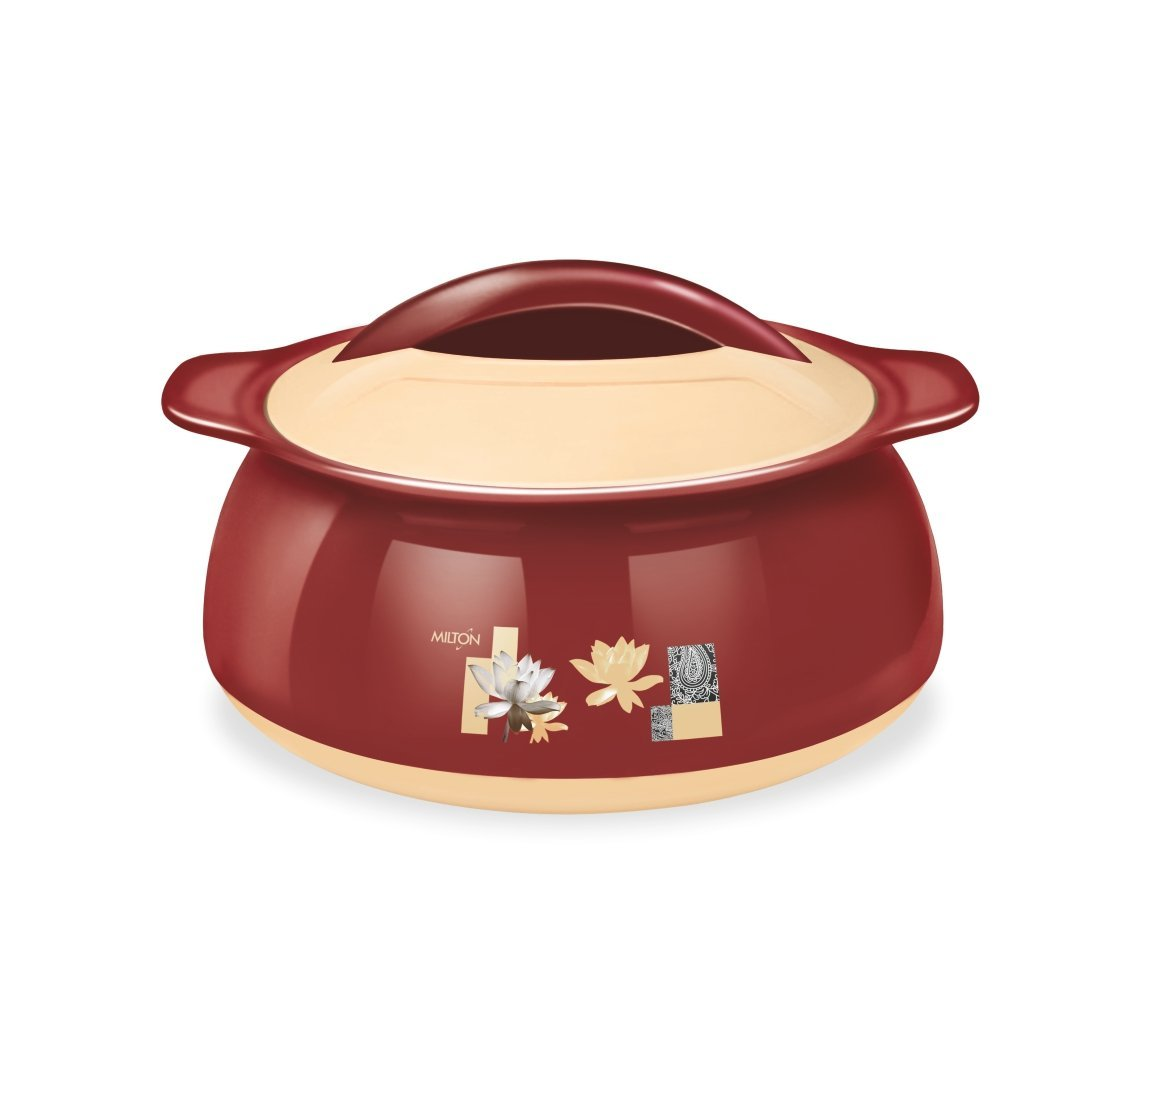 Milton Delish Insulated Casserole Stainless Steel Color Brown Size 1000 Ml